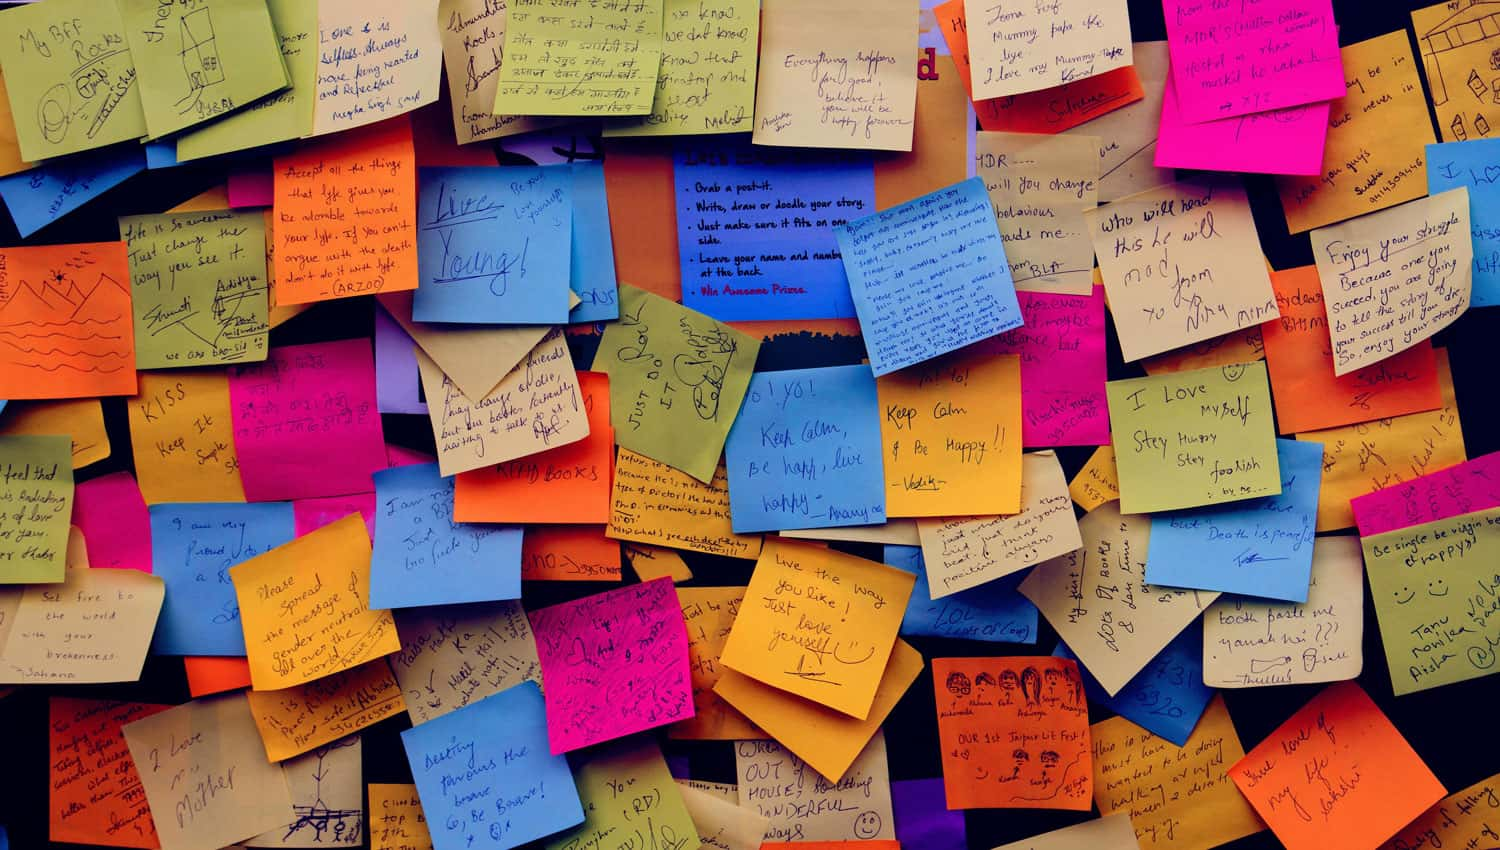 post-it-notes-1284667.jpg